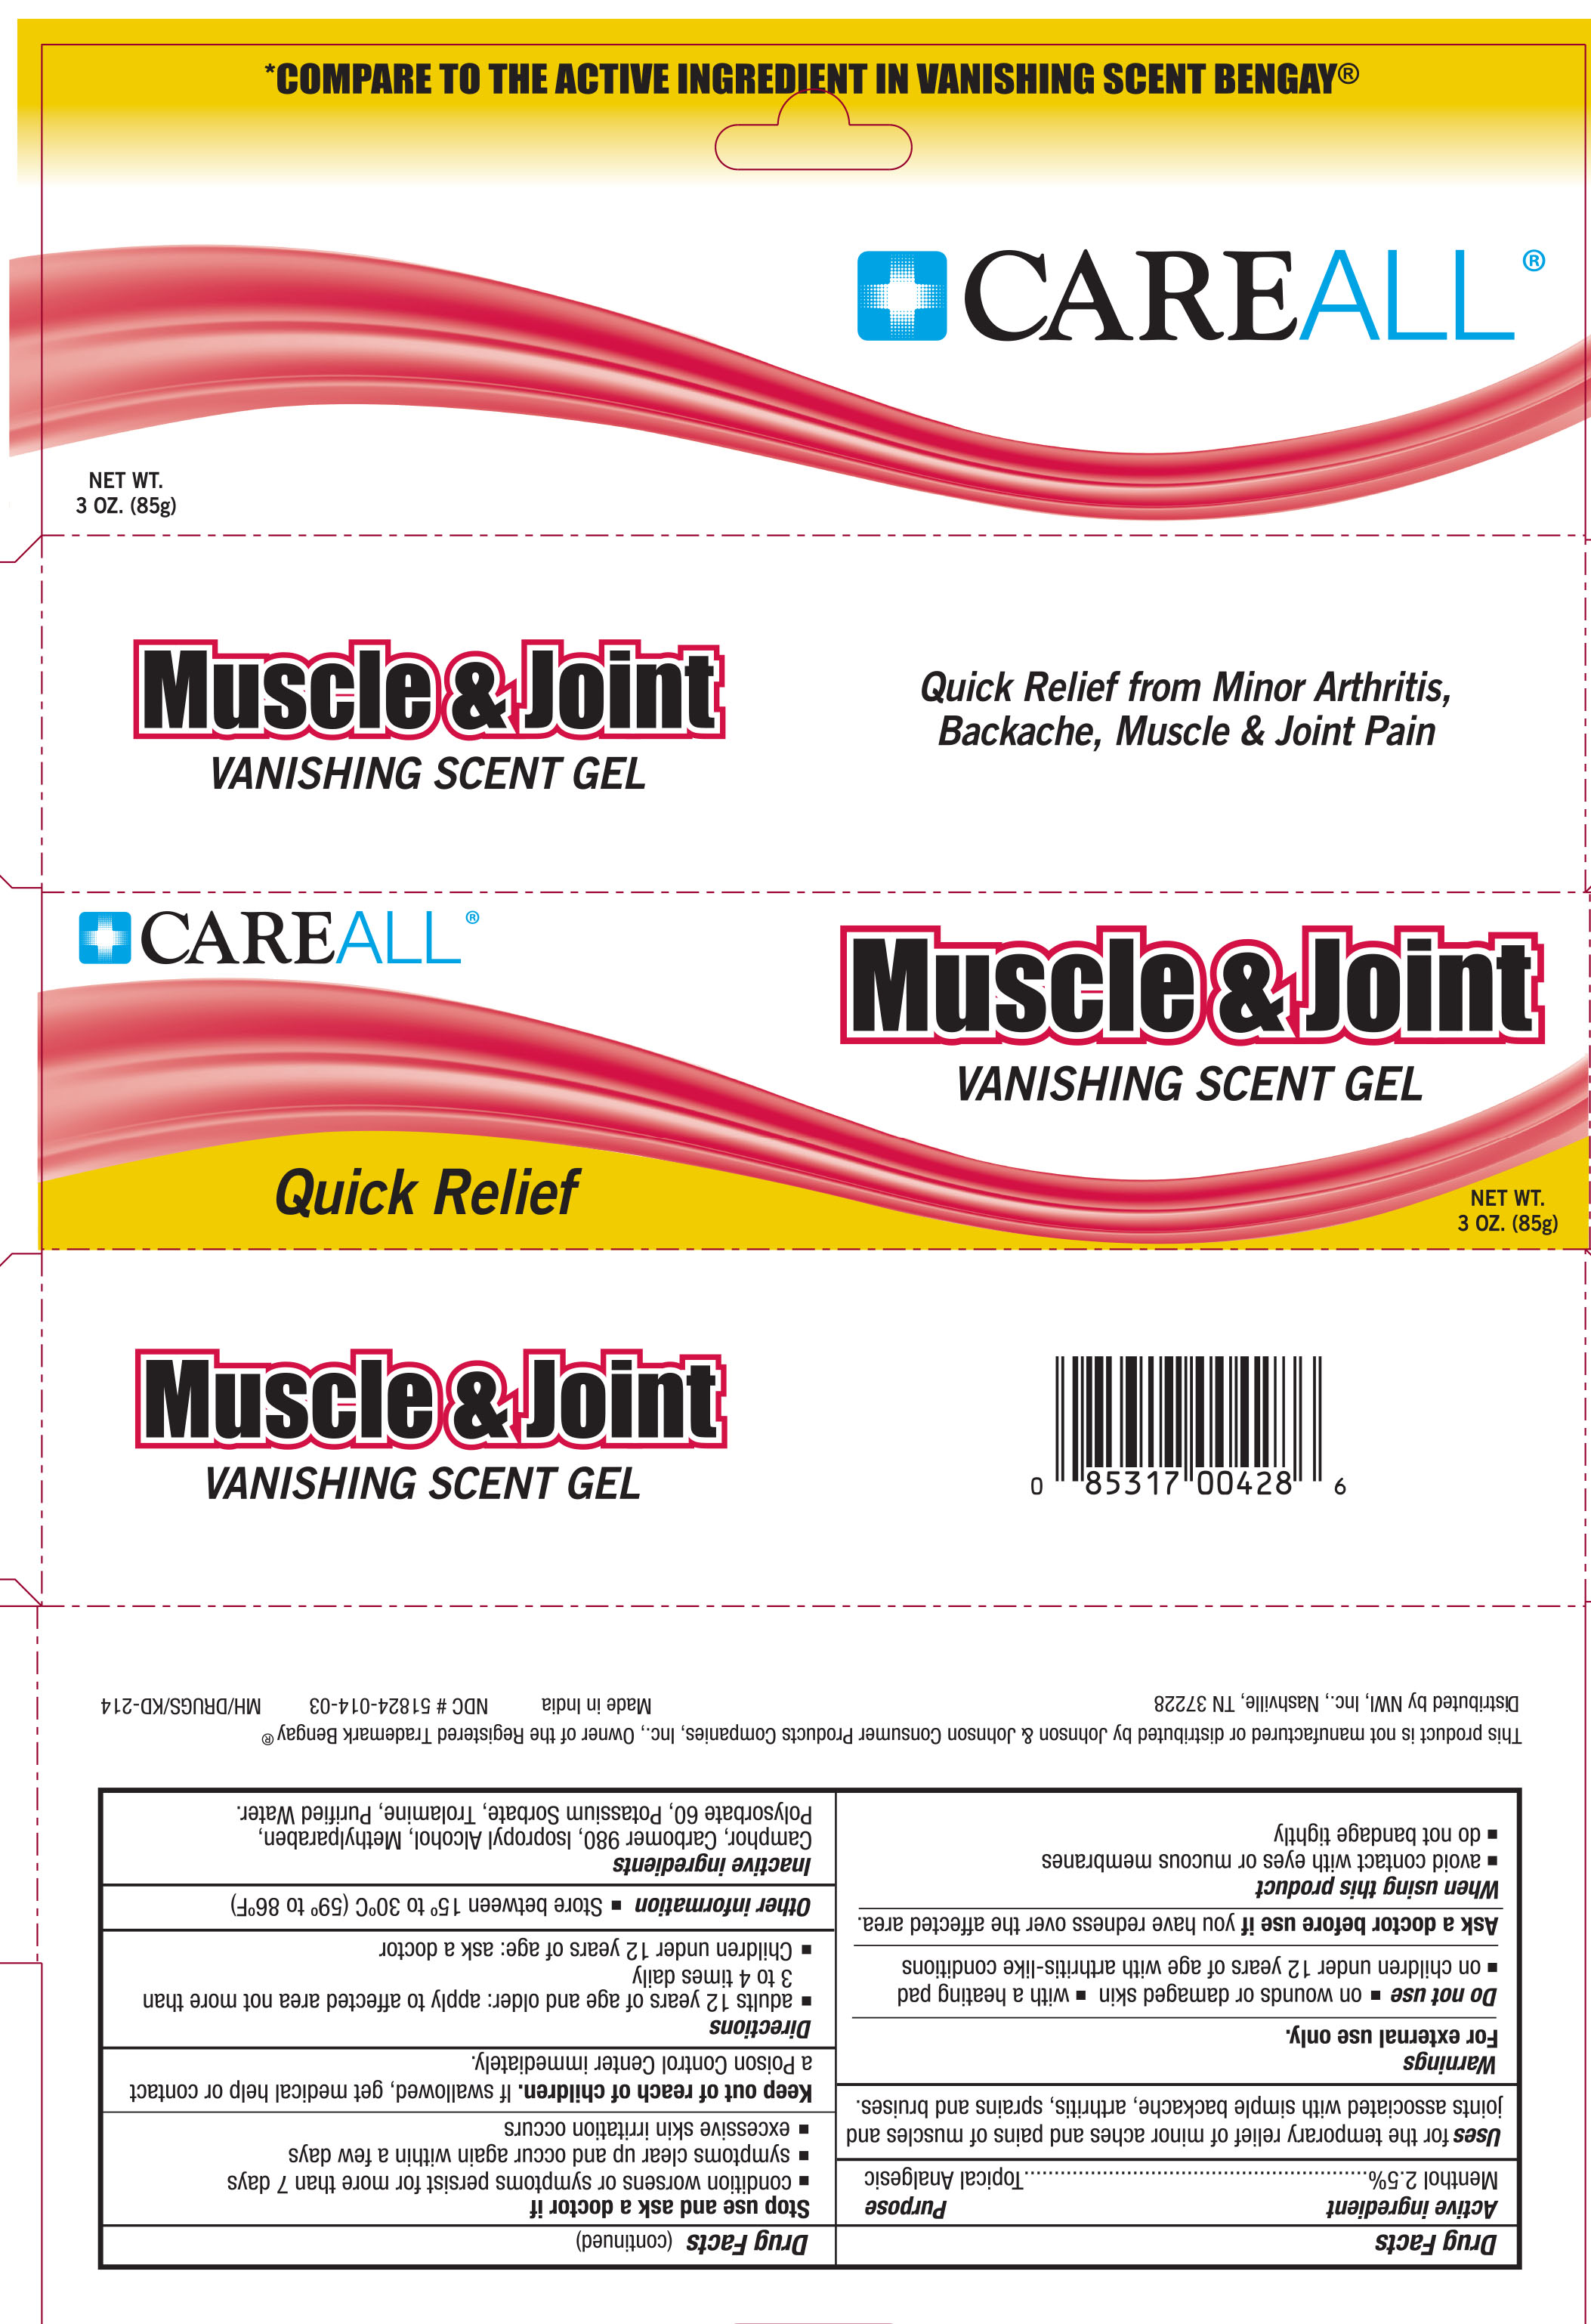 Muscle and joint Label